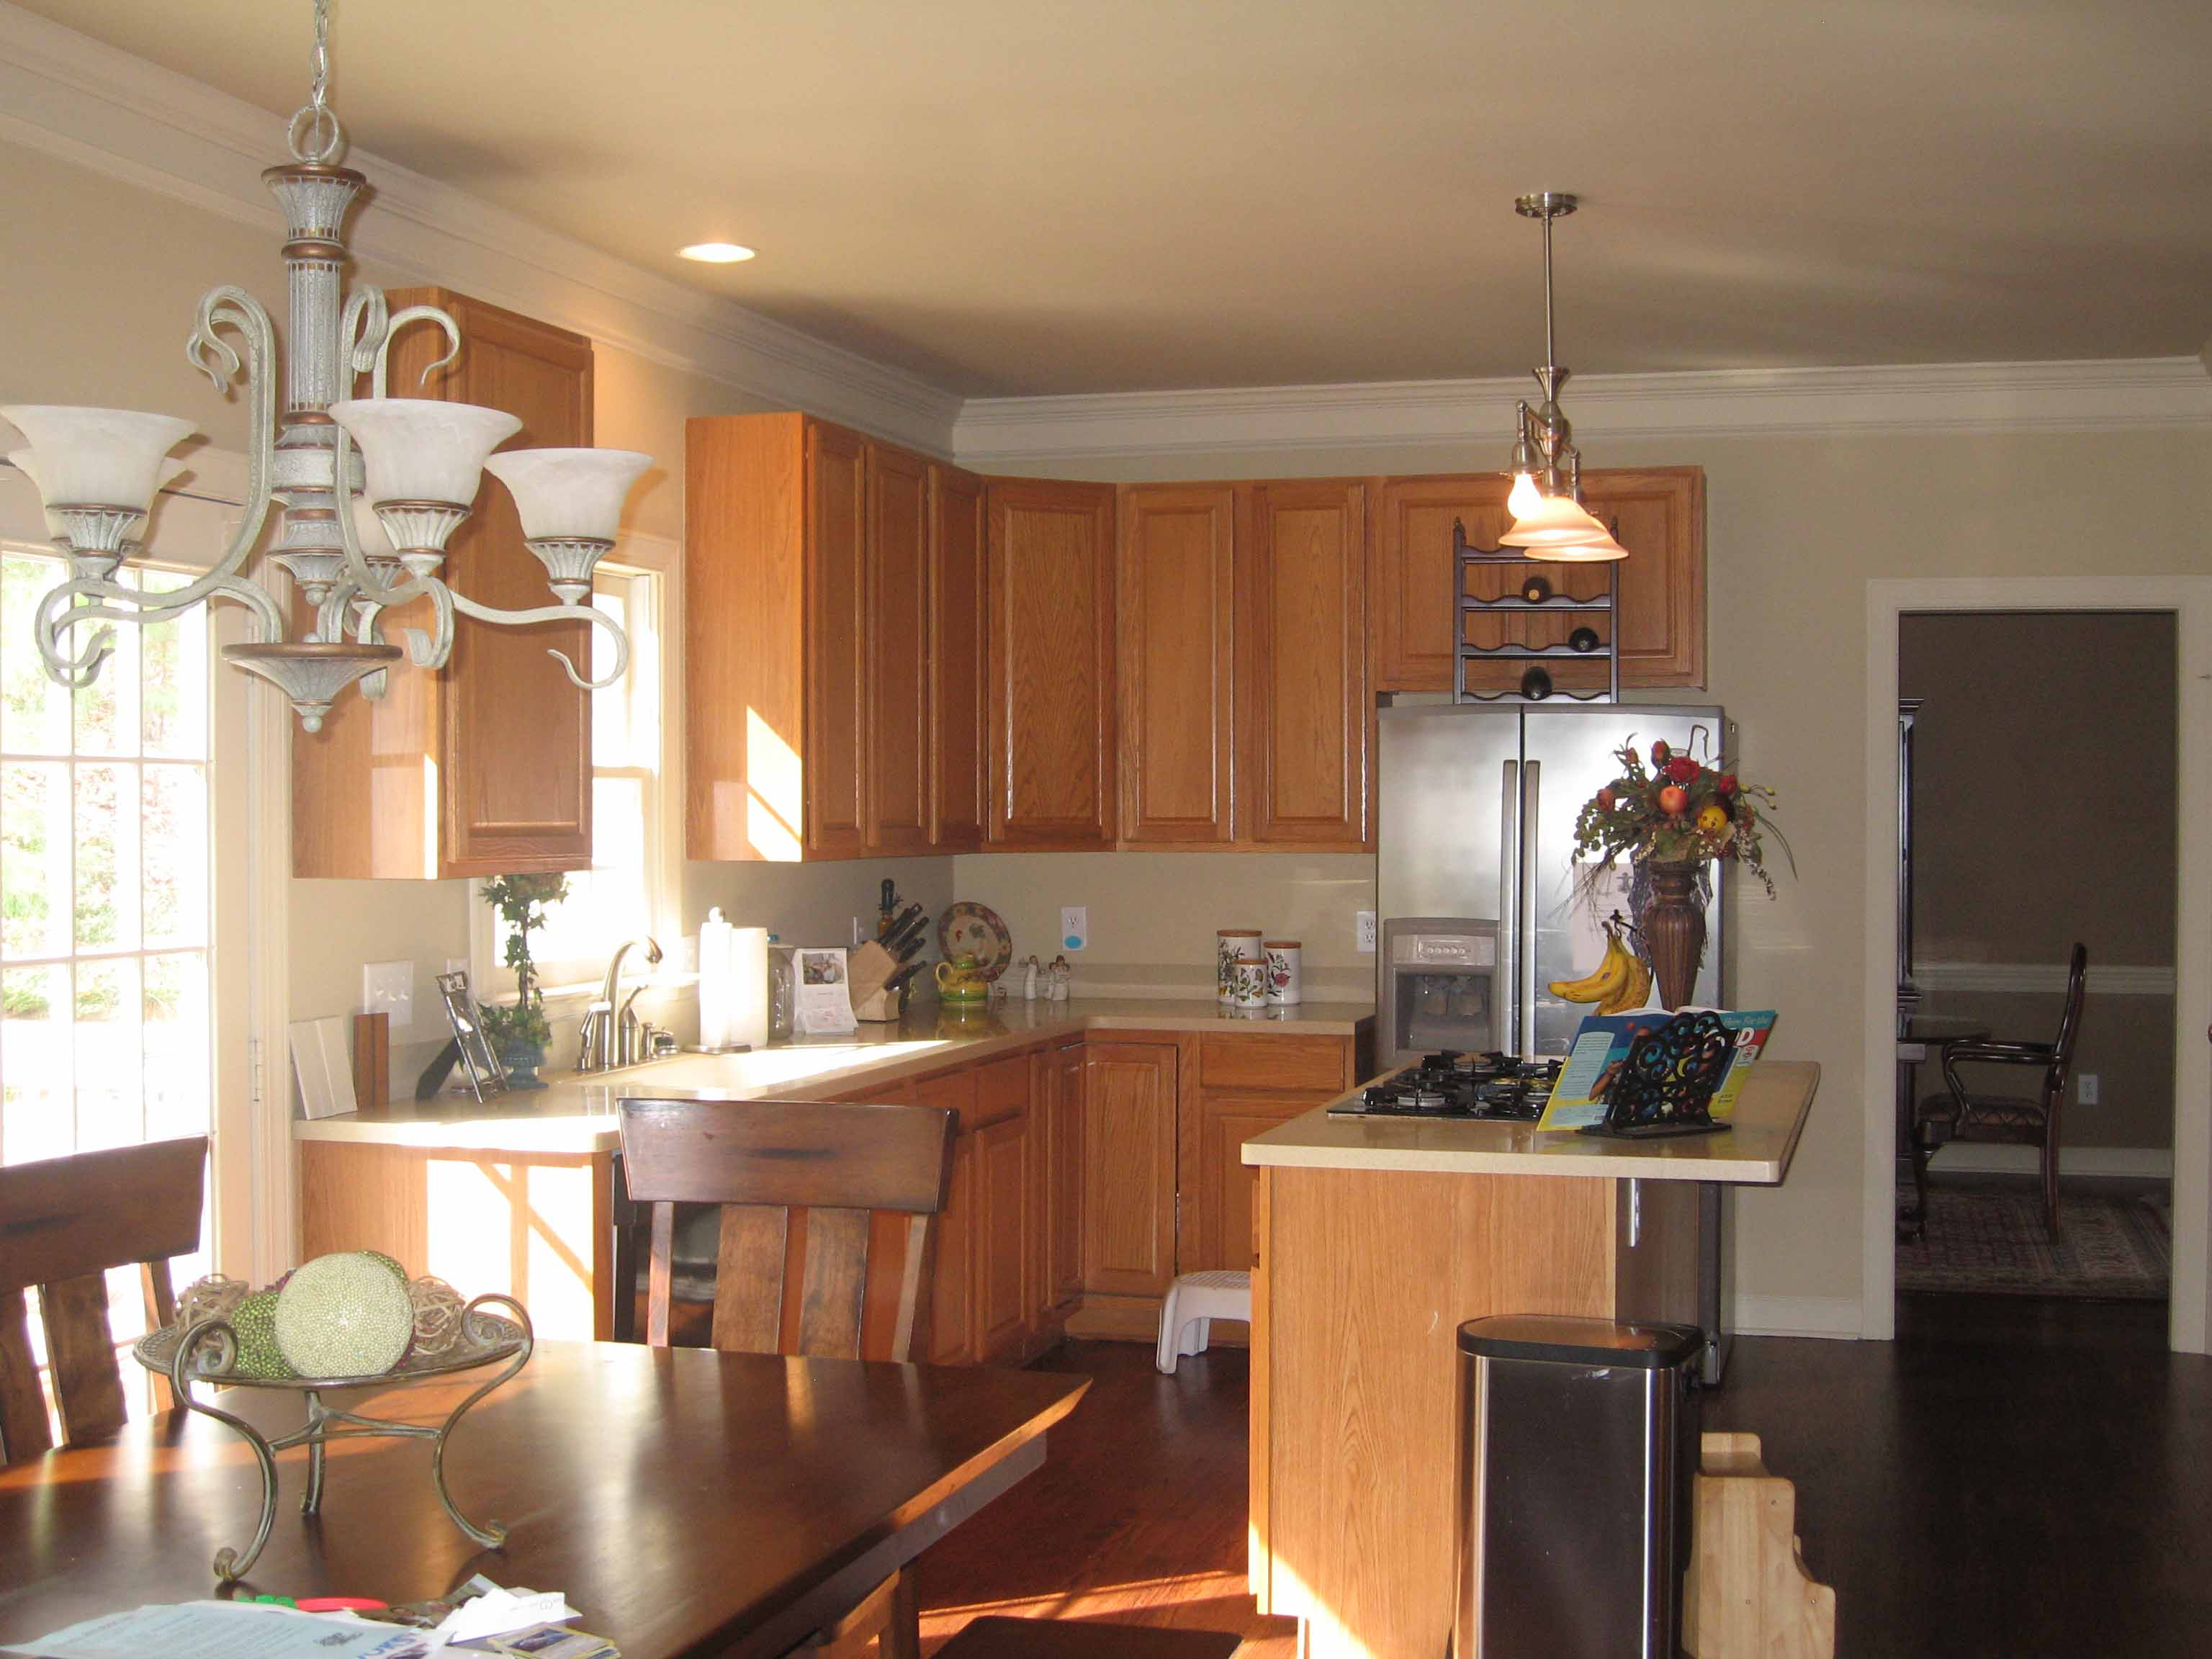 RTA Cabinets Customer Reviews kitchen cabinets online Buy cabinets online